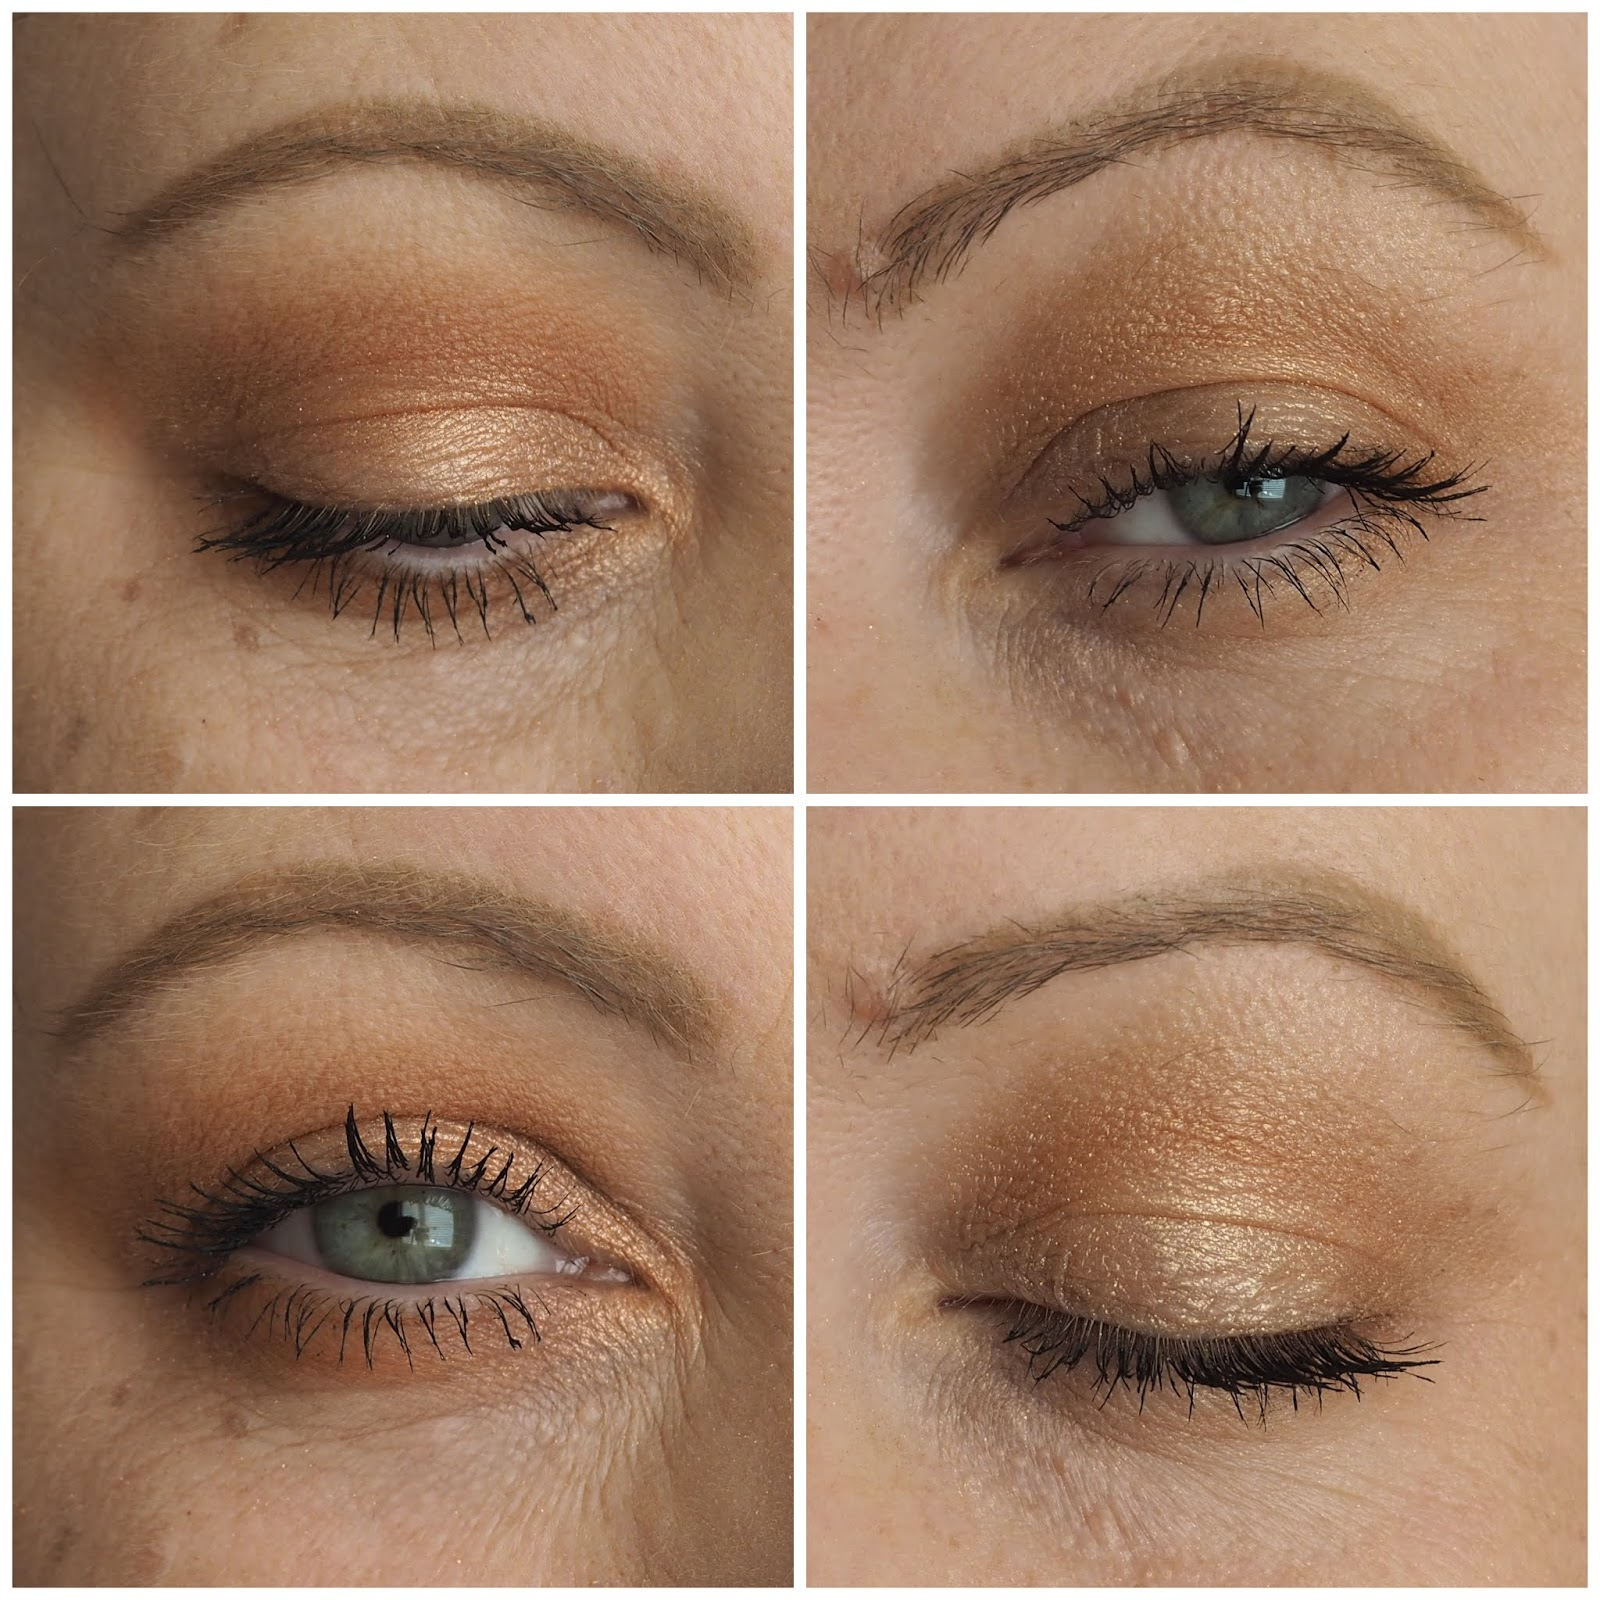 a7c26ab896f In the photos above, on the left we have the Love Eyes, on the right is the  Power Eyes. This half of the palette is more for daytime wear and brings  light ...